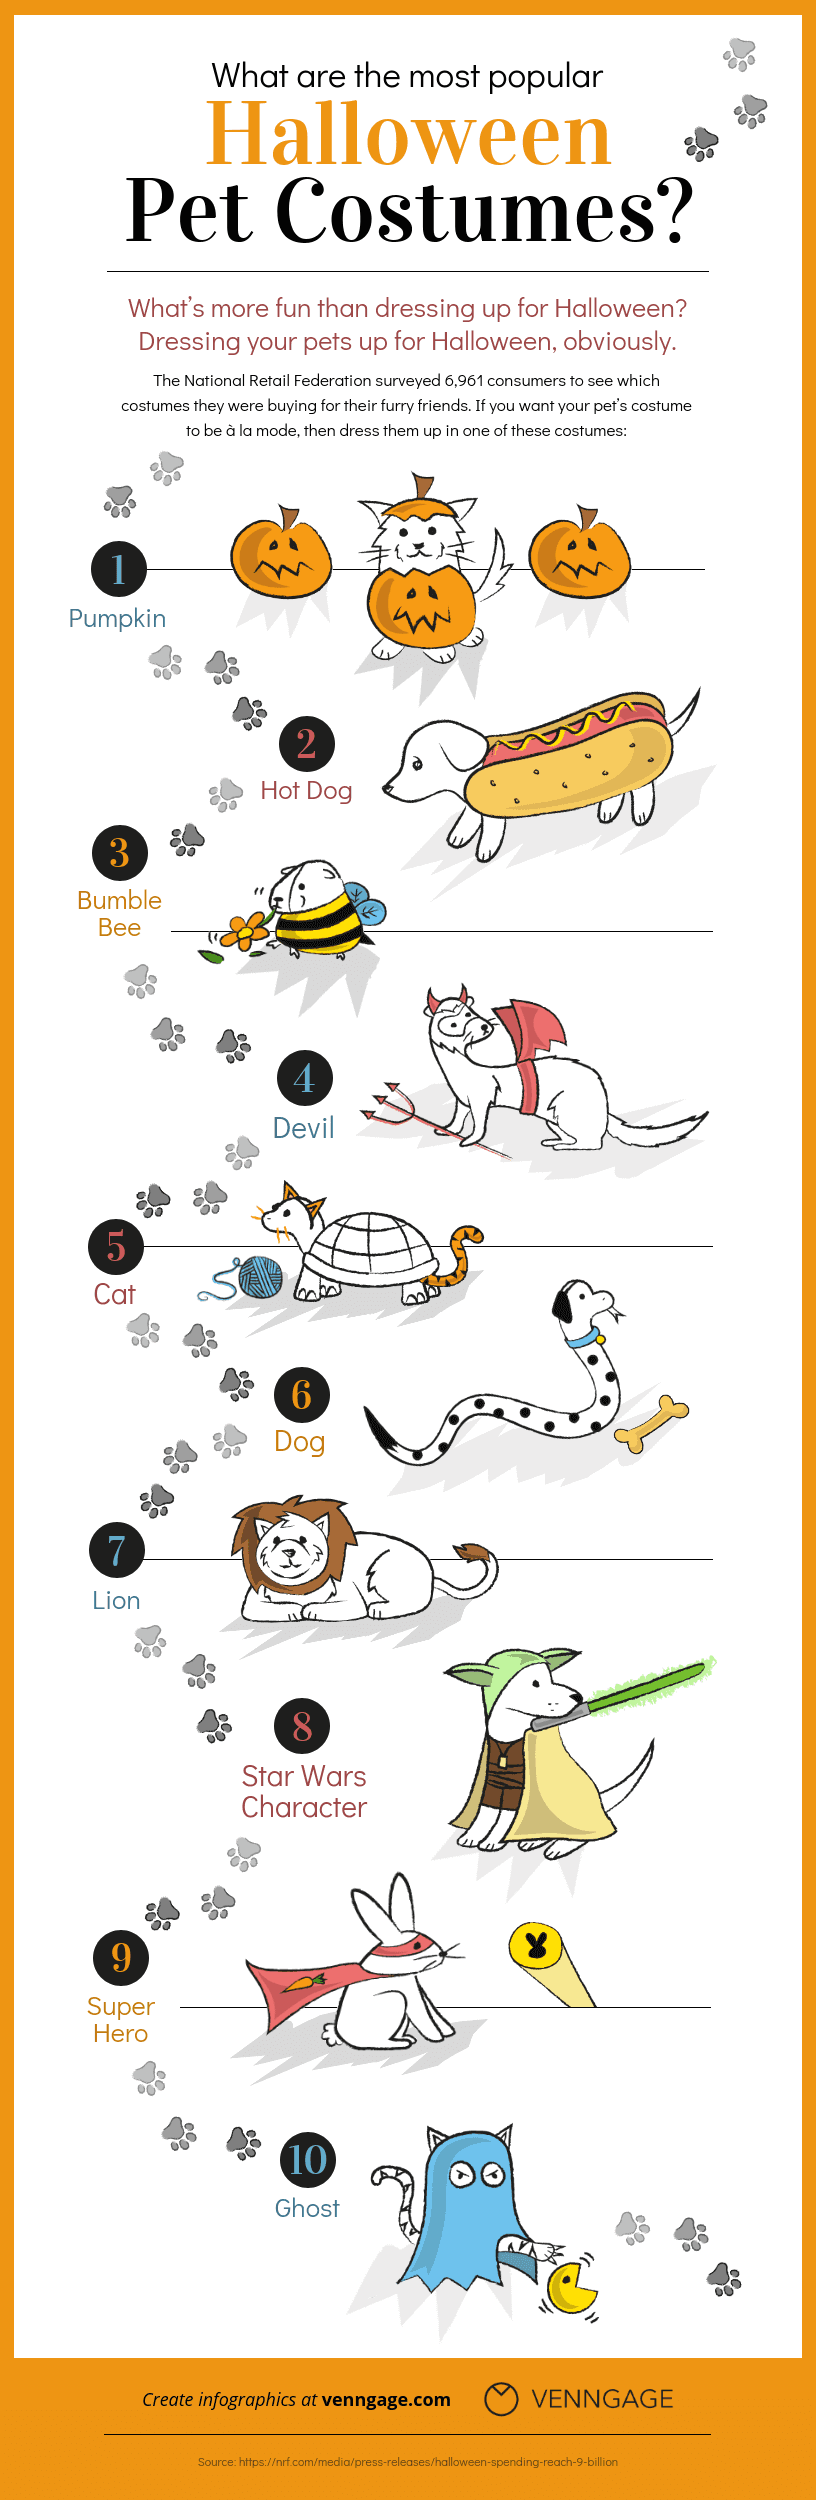 Funny Infographic Template for Halloween Costume Ideas